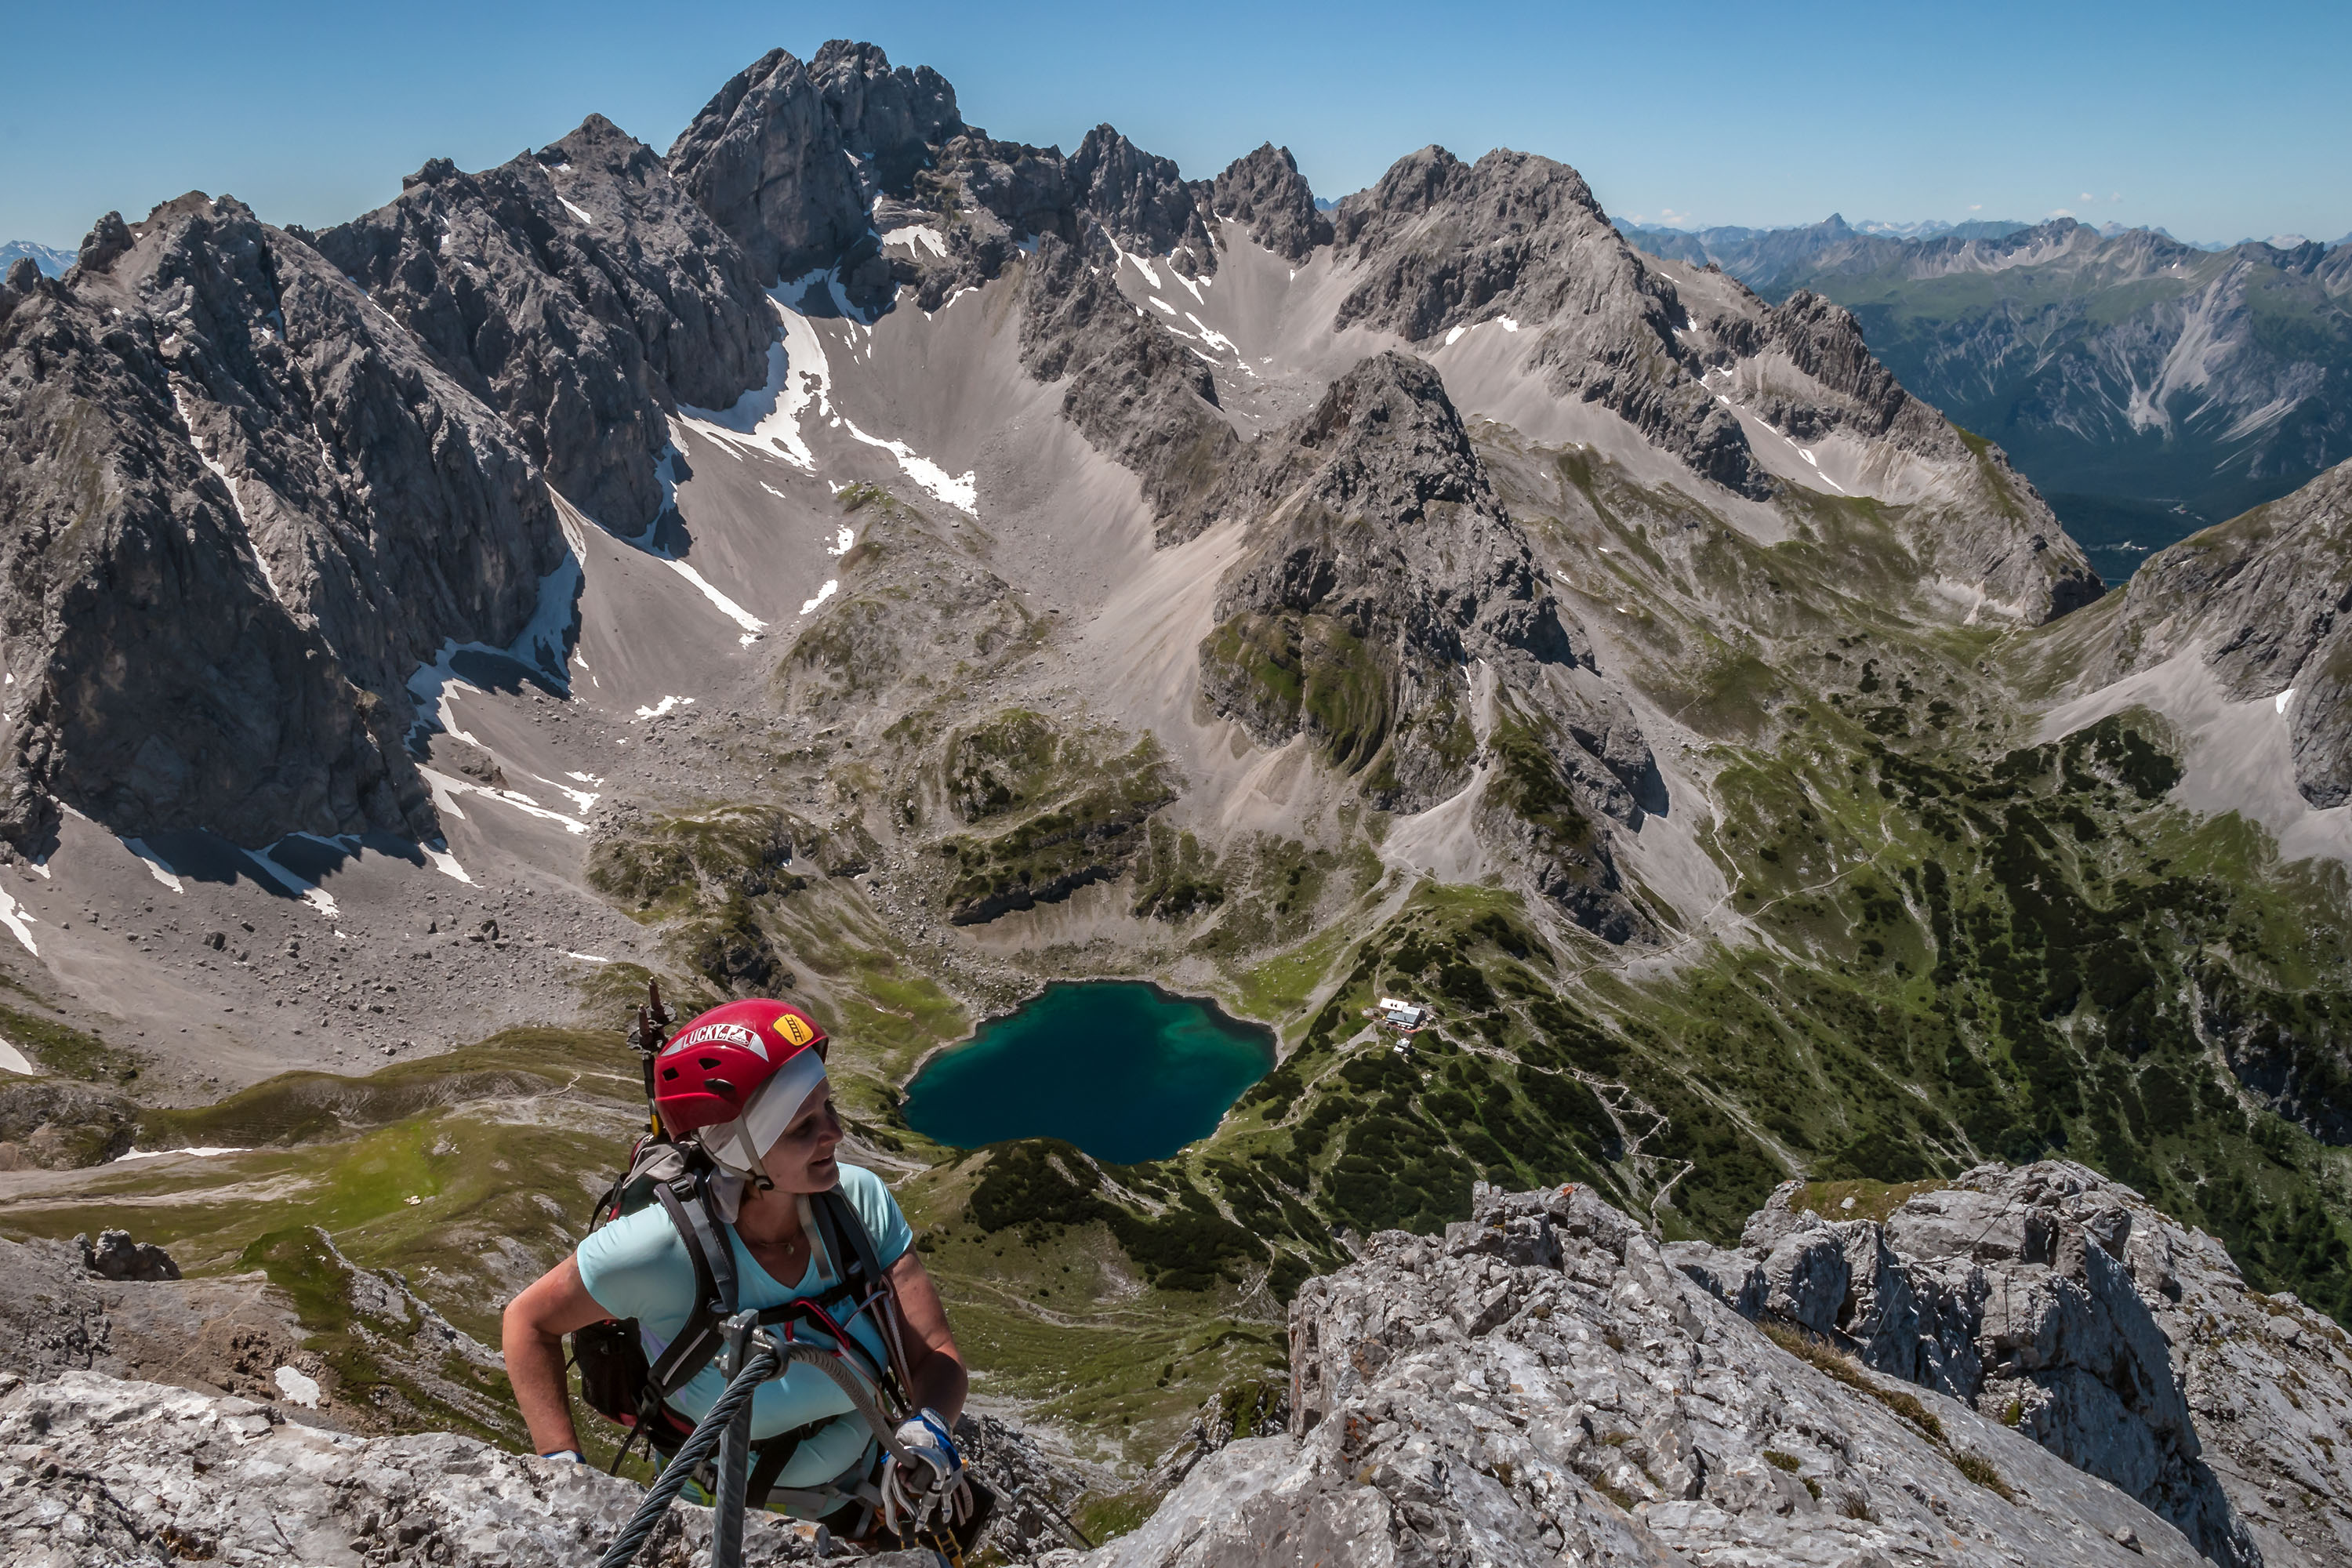 Klettersteig Tajakante : Klettersteig tajakante wgm picture